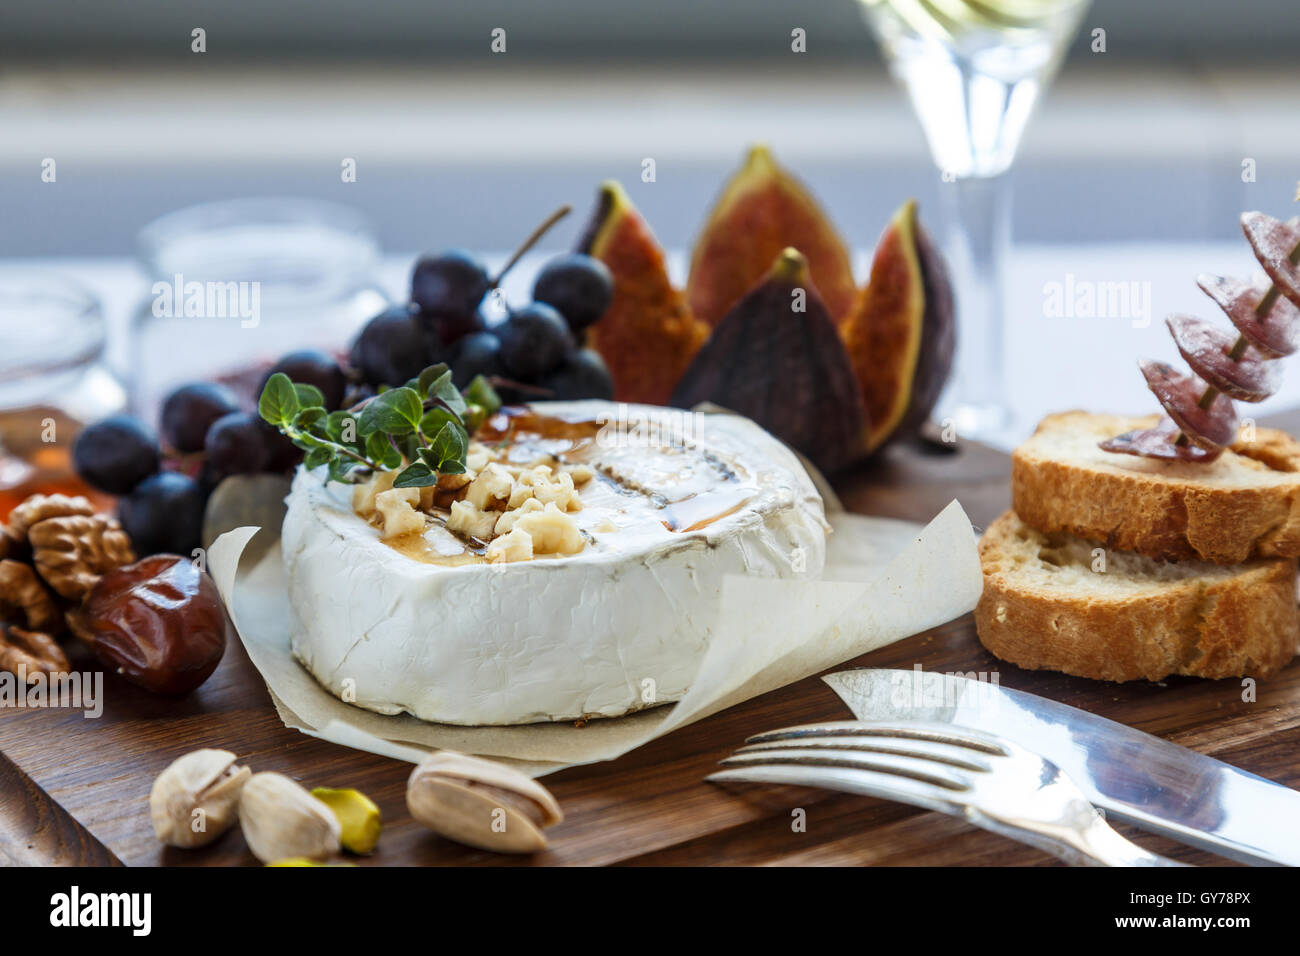 Baked camembert cheese with figs, honey, grapes and nuts. Top view - Stock Image